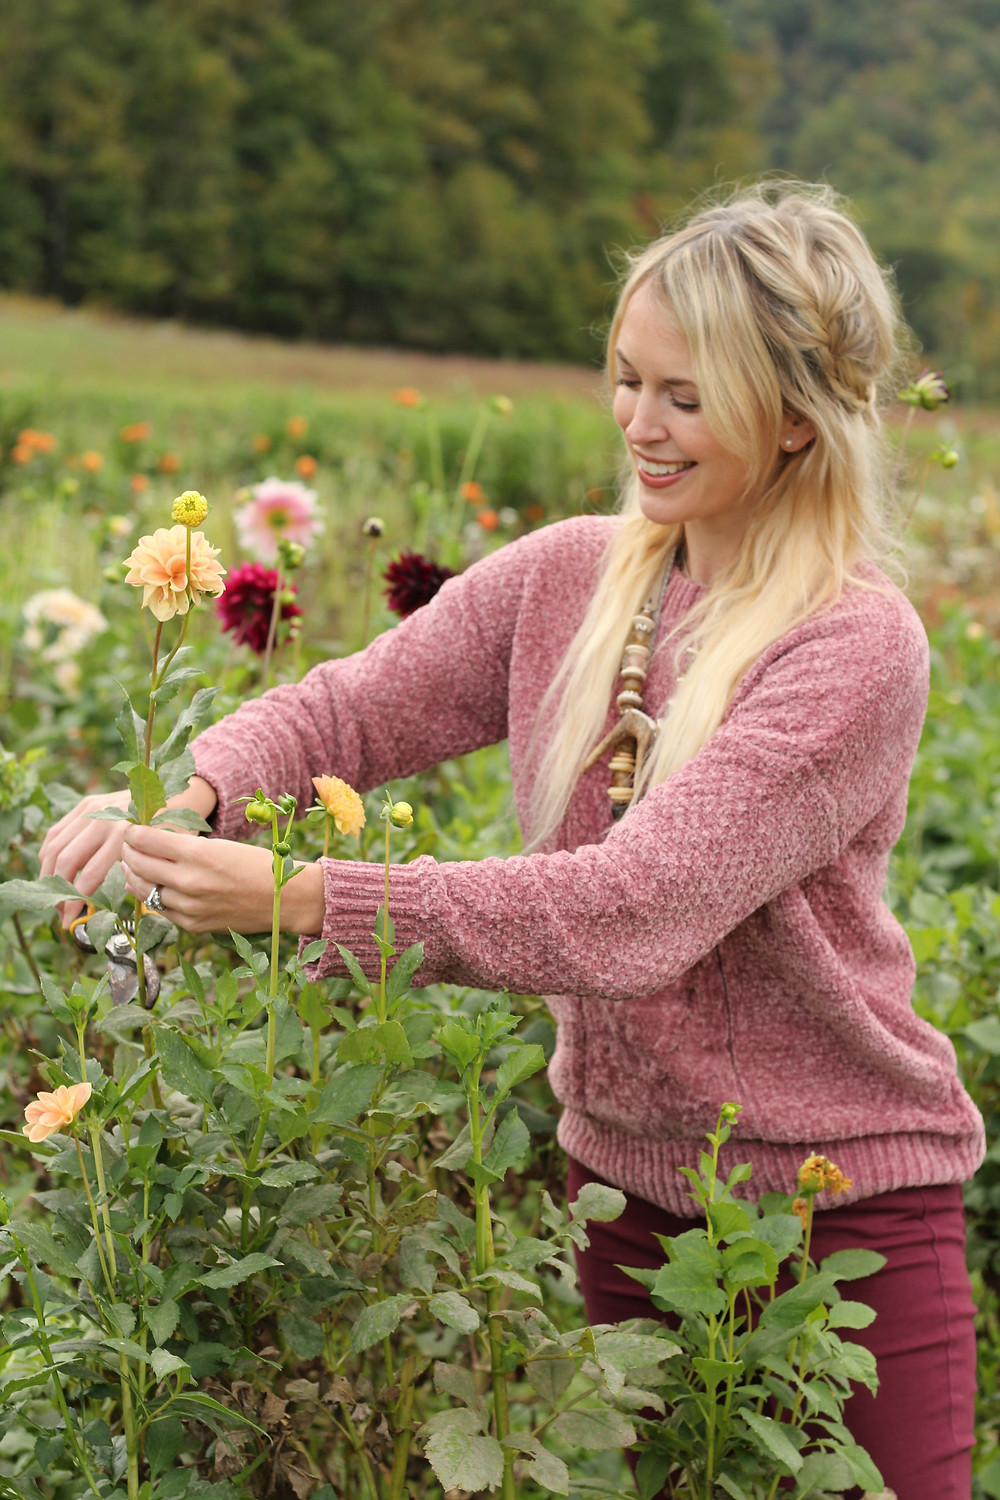 Brooke Williams clips a flower at Lady Luck Flower Farm in Asheville, NC.